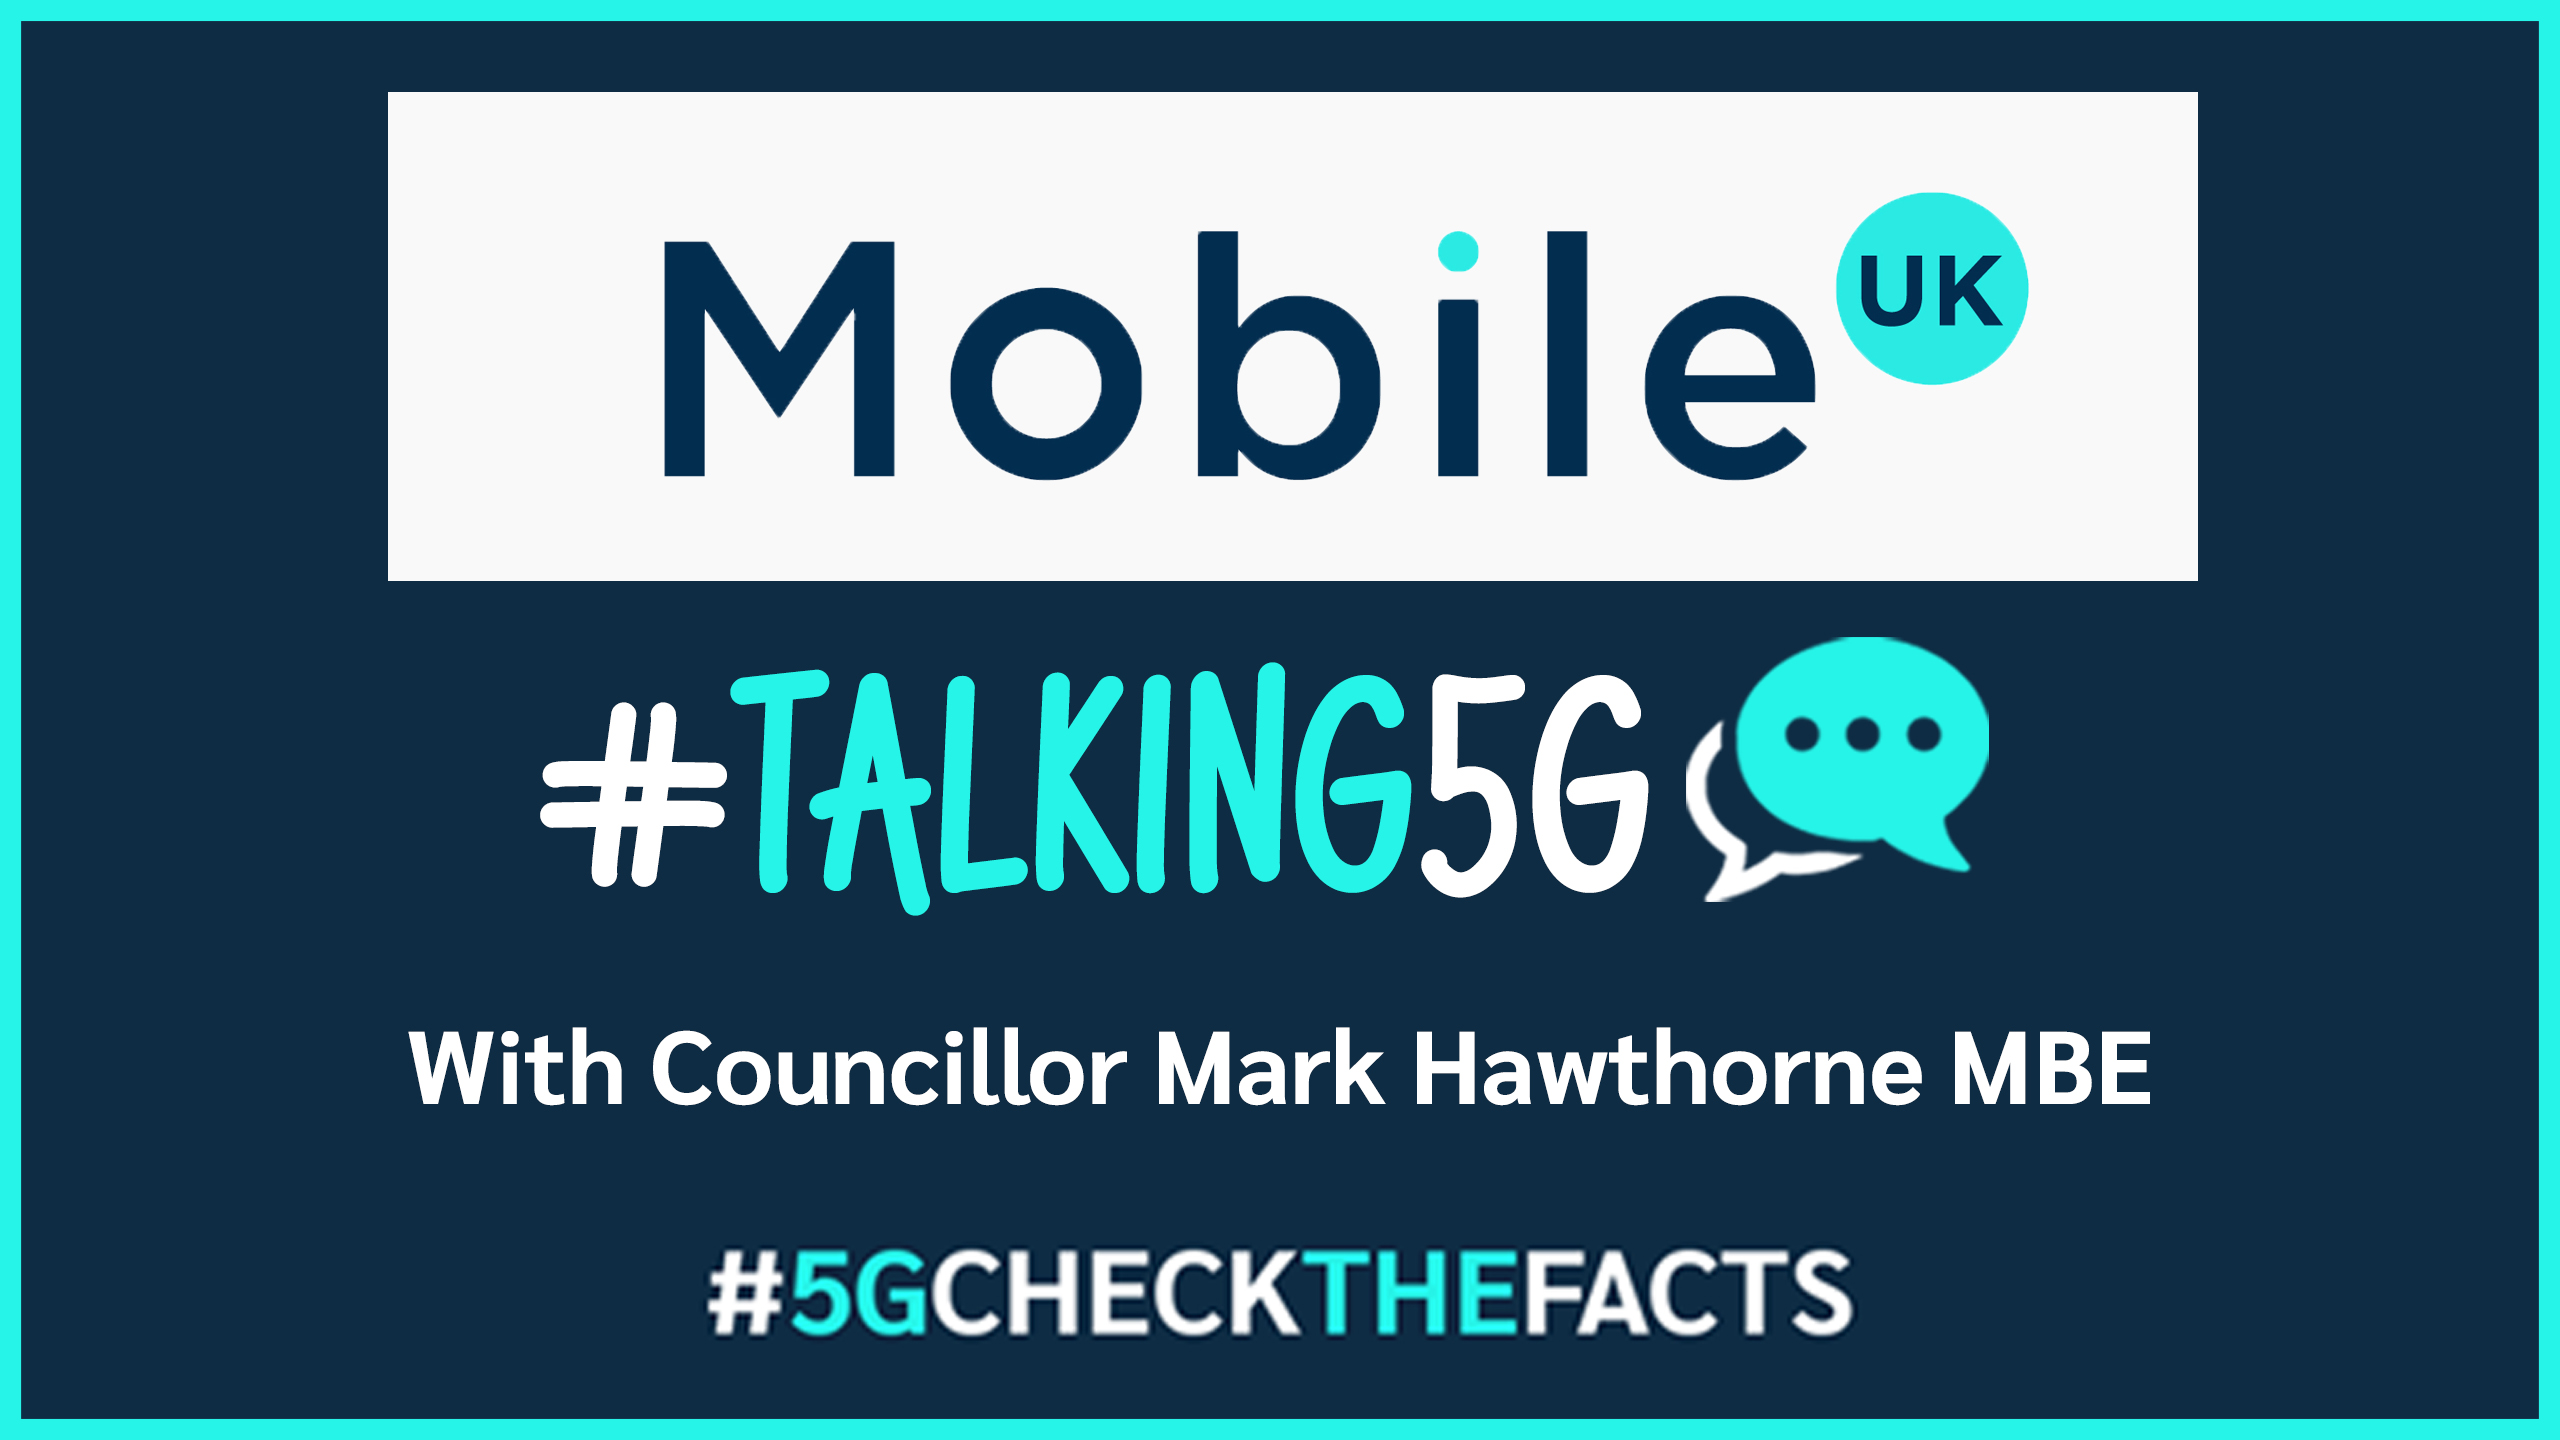 #Talking5G, Mark Hawthorne, Glucestershire County Council, #5G, 5G, Mobile, Councils, LGA